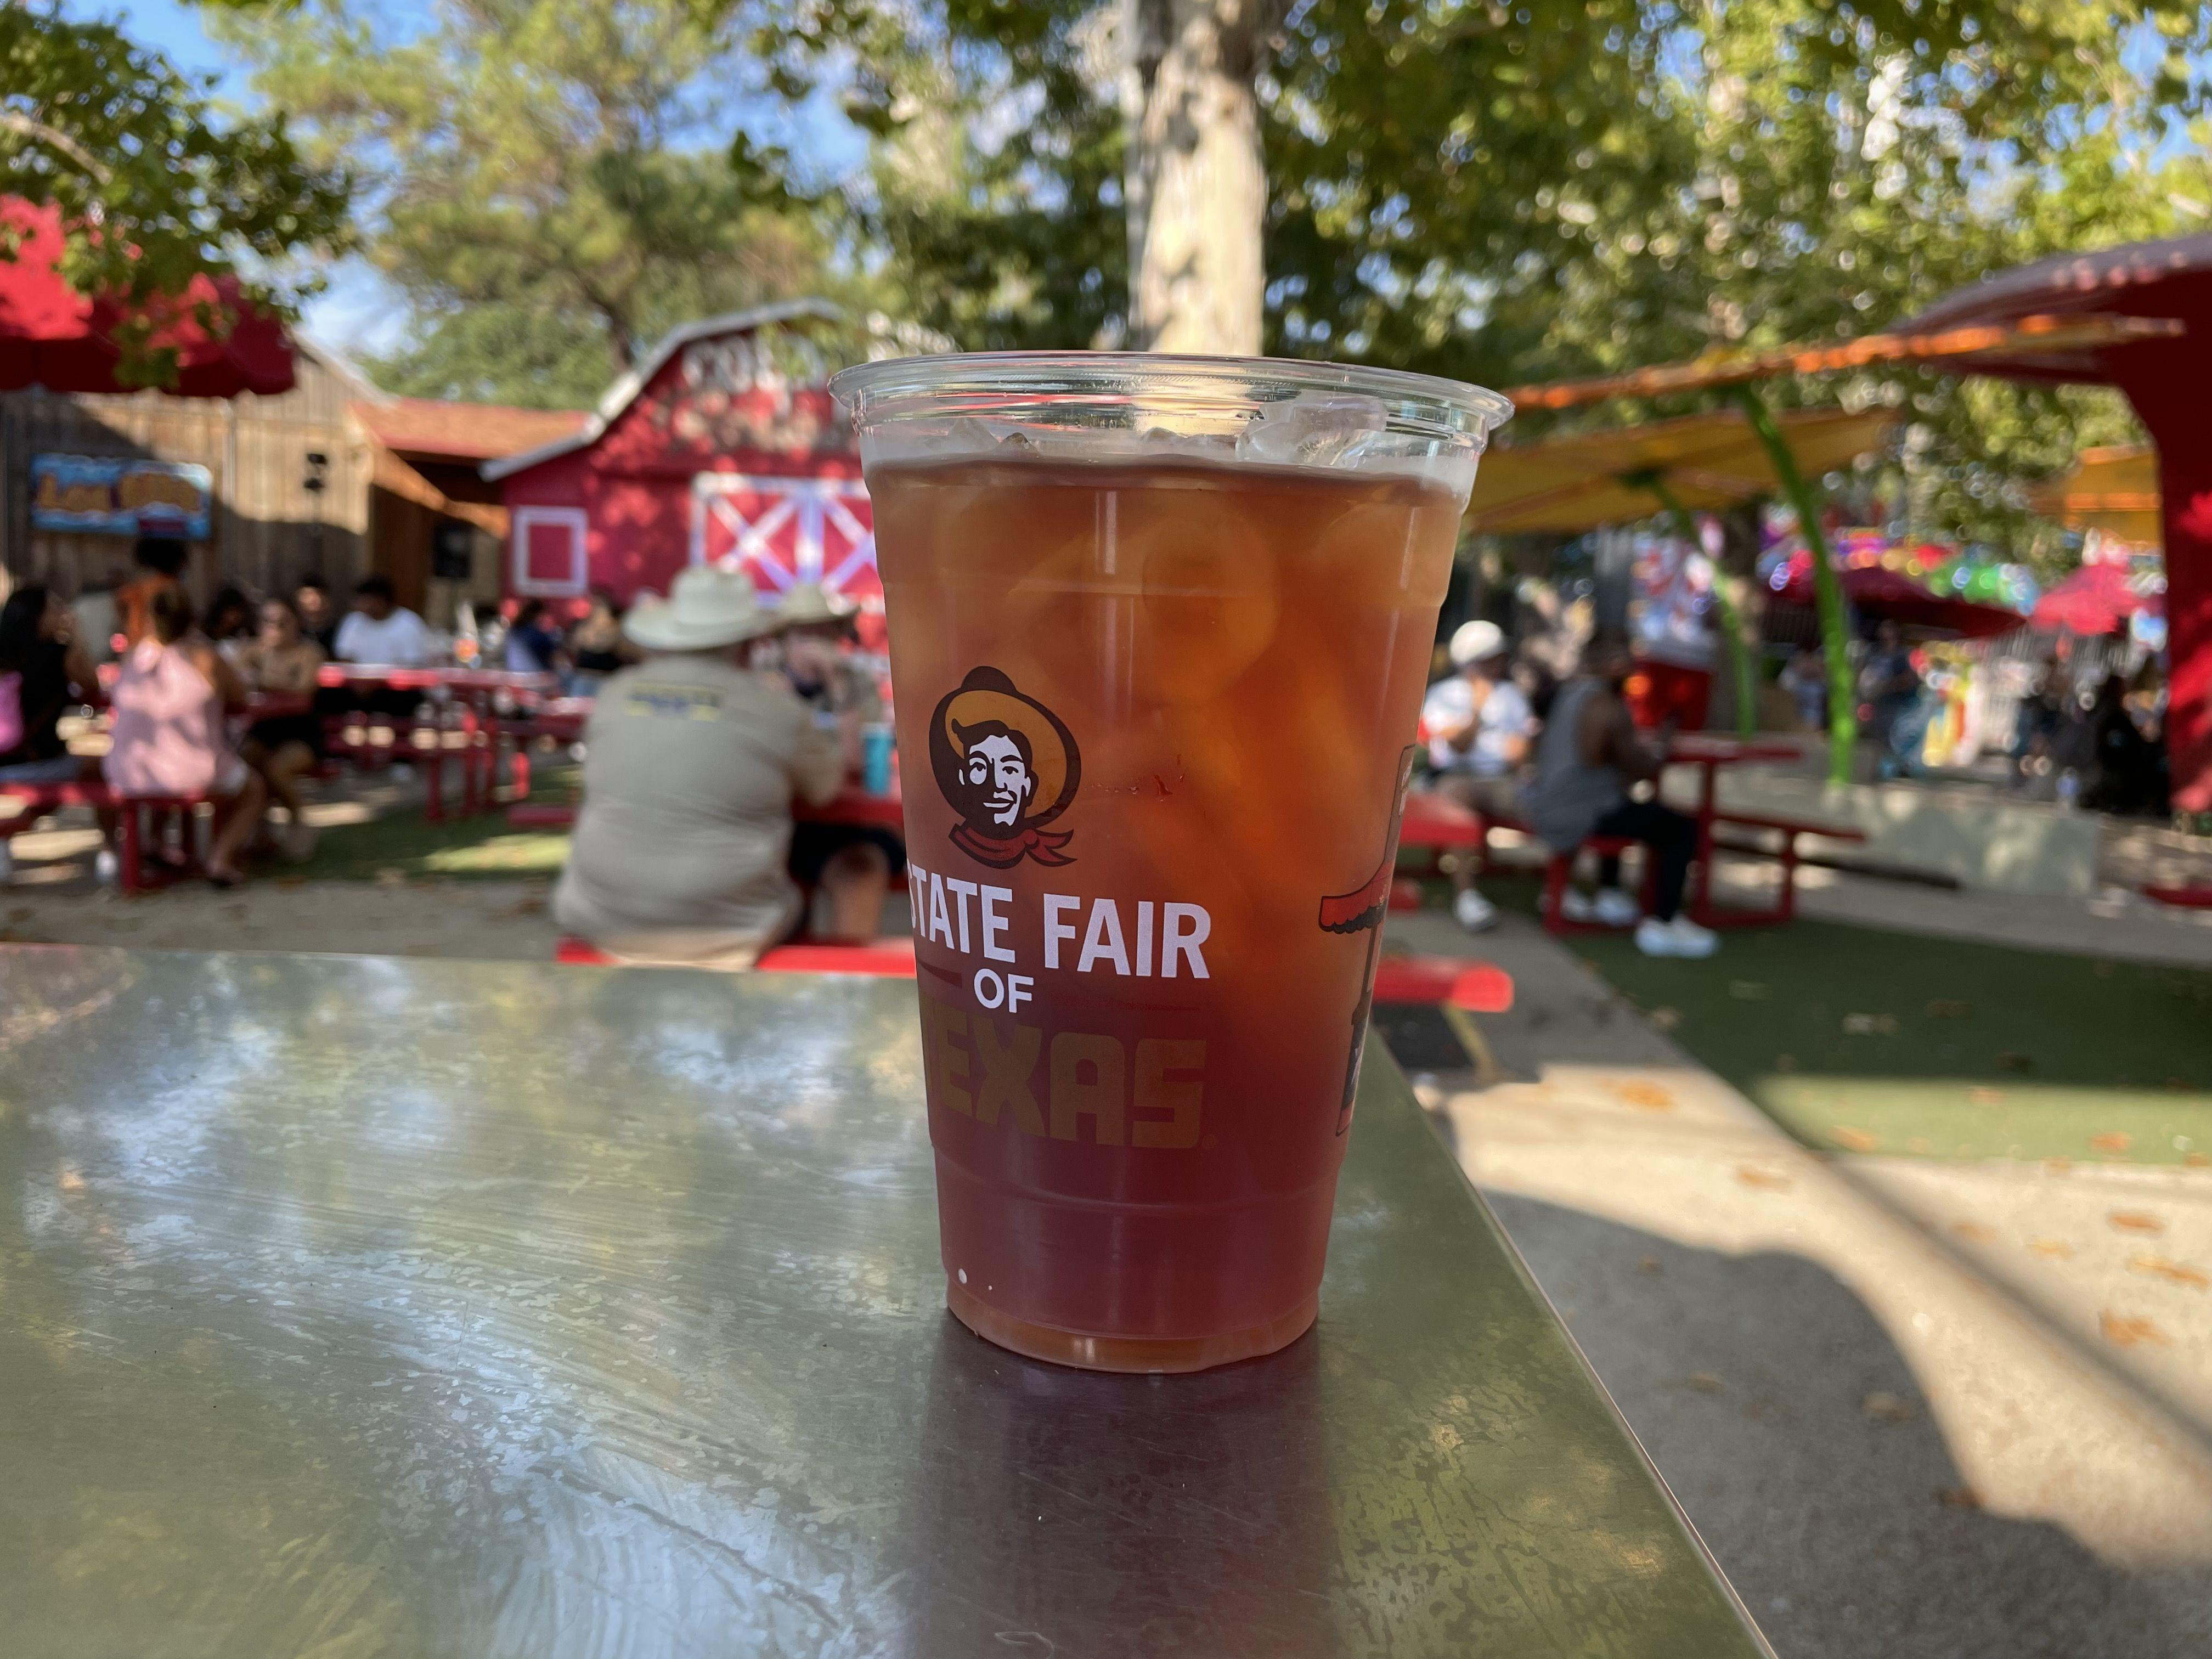 A cold iced tea in a plastic cup in an outdoor setting